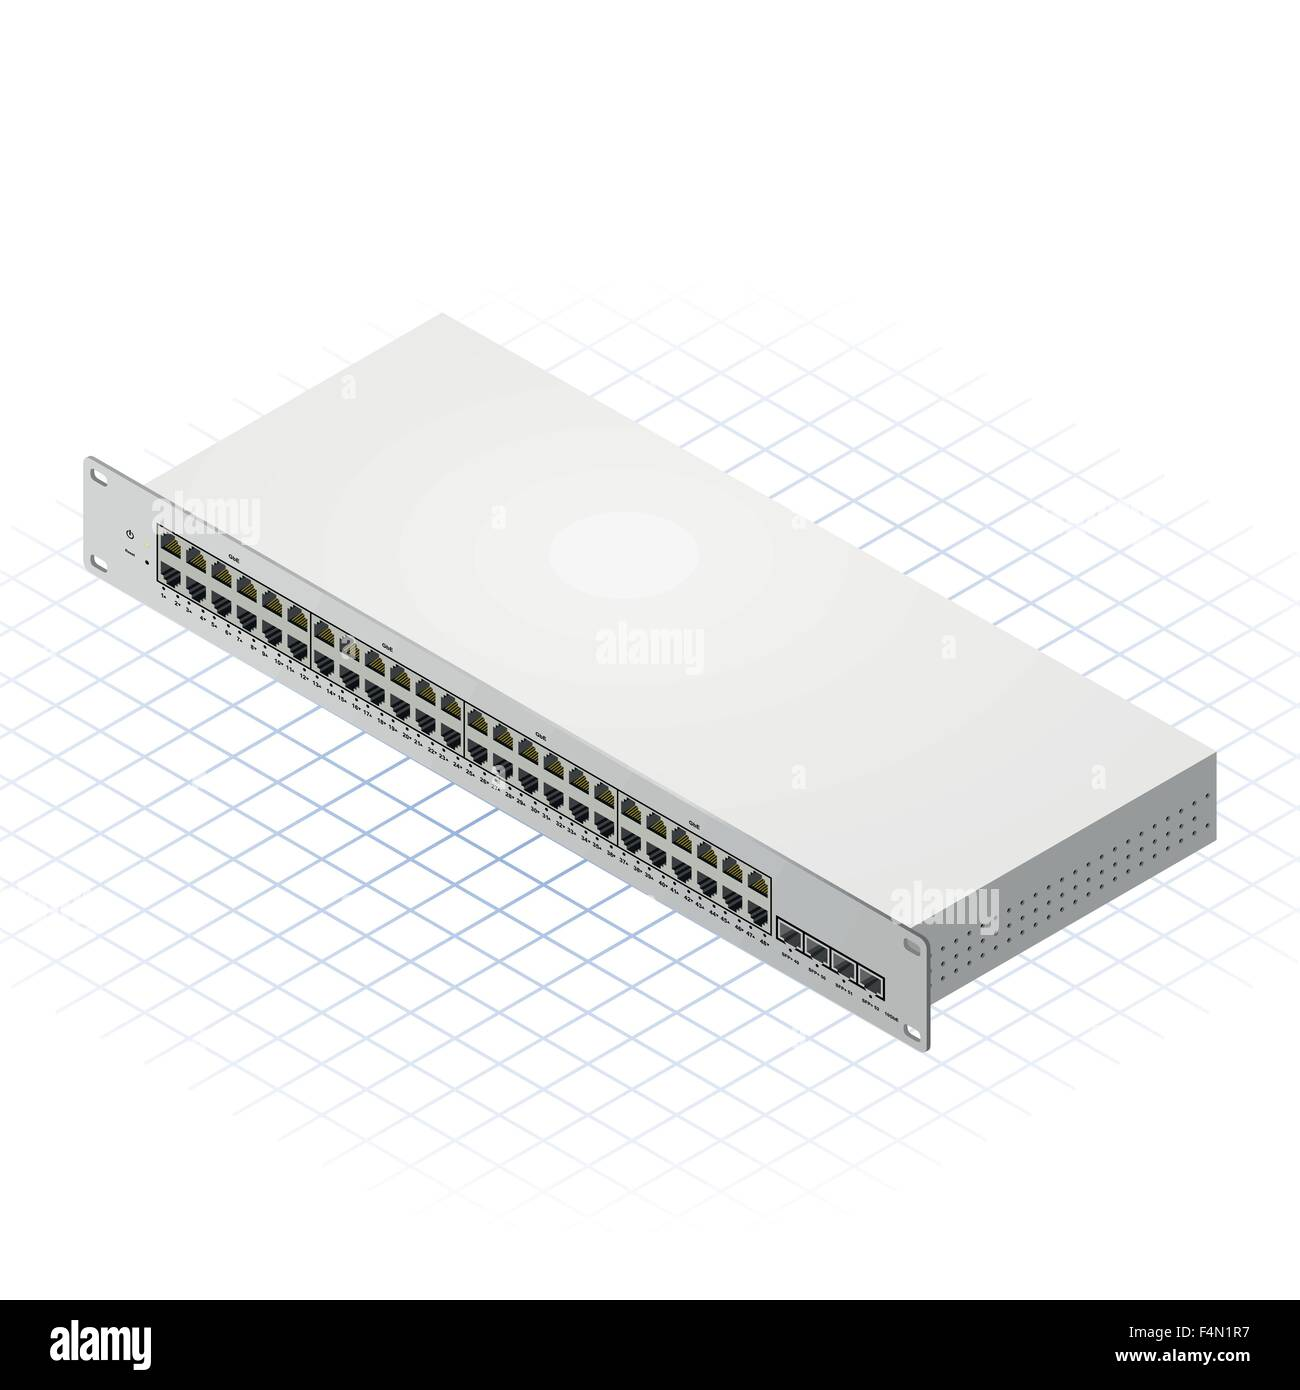 Isometric Switch with Fourty Eight Port Vector Illustration - Stock Image